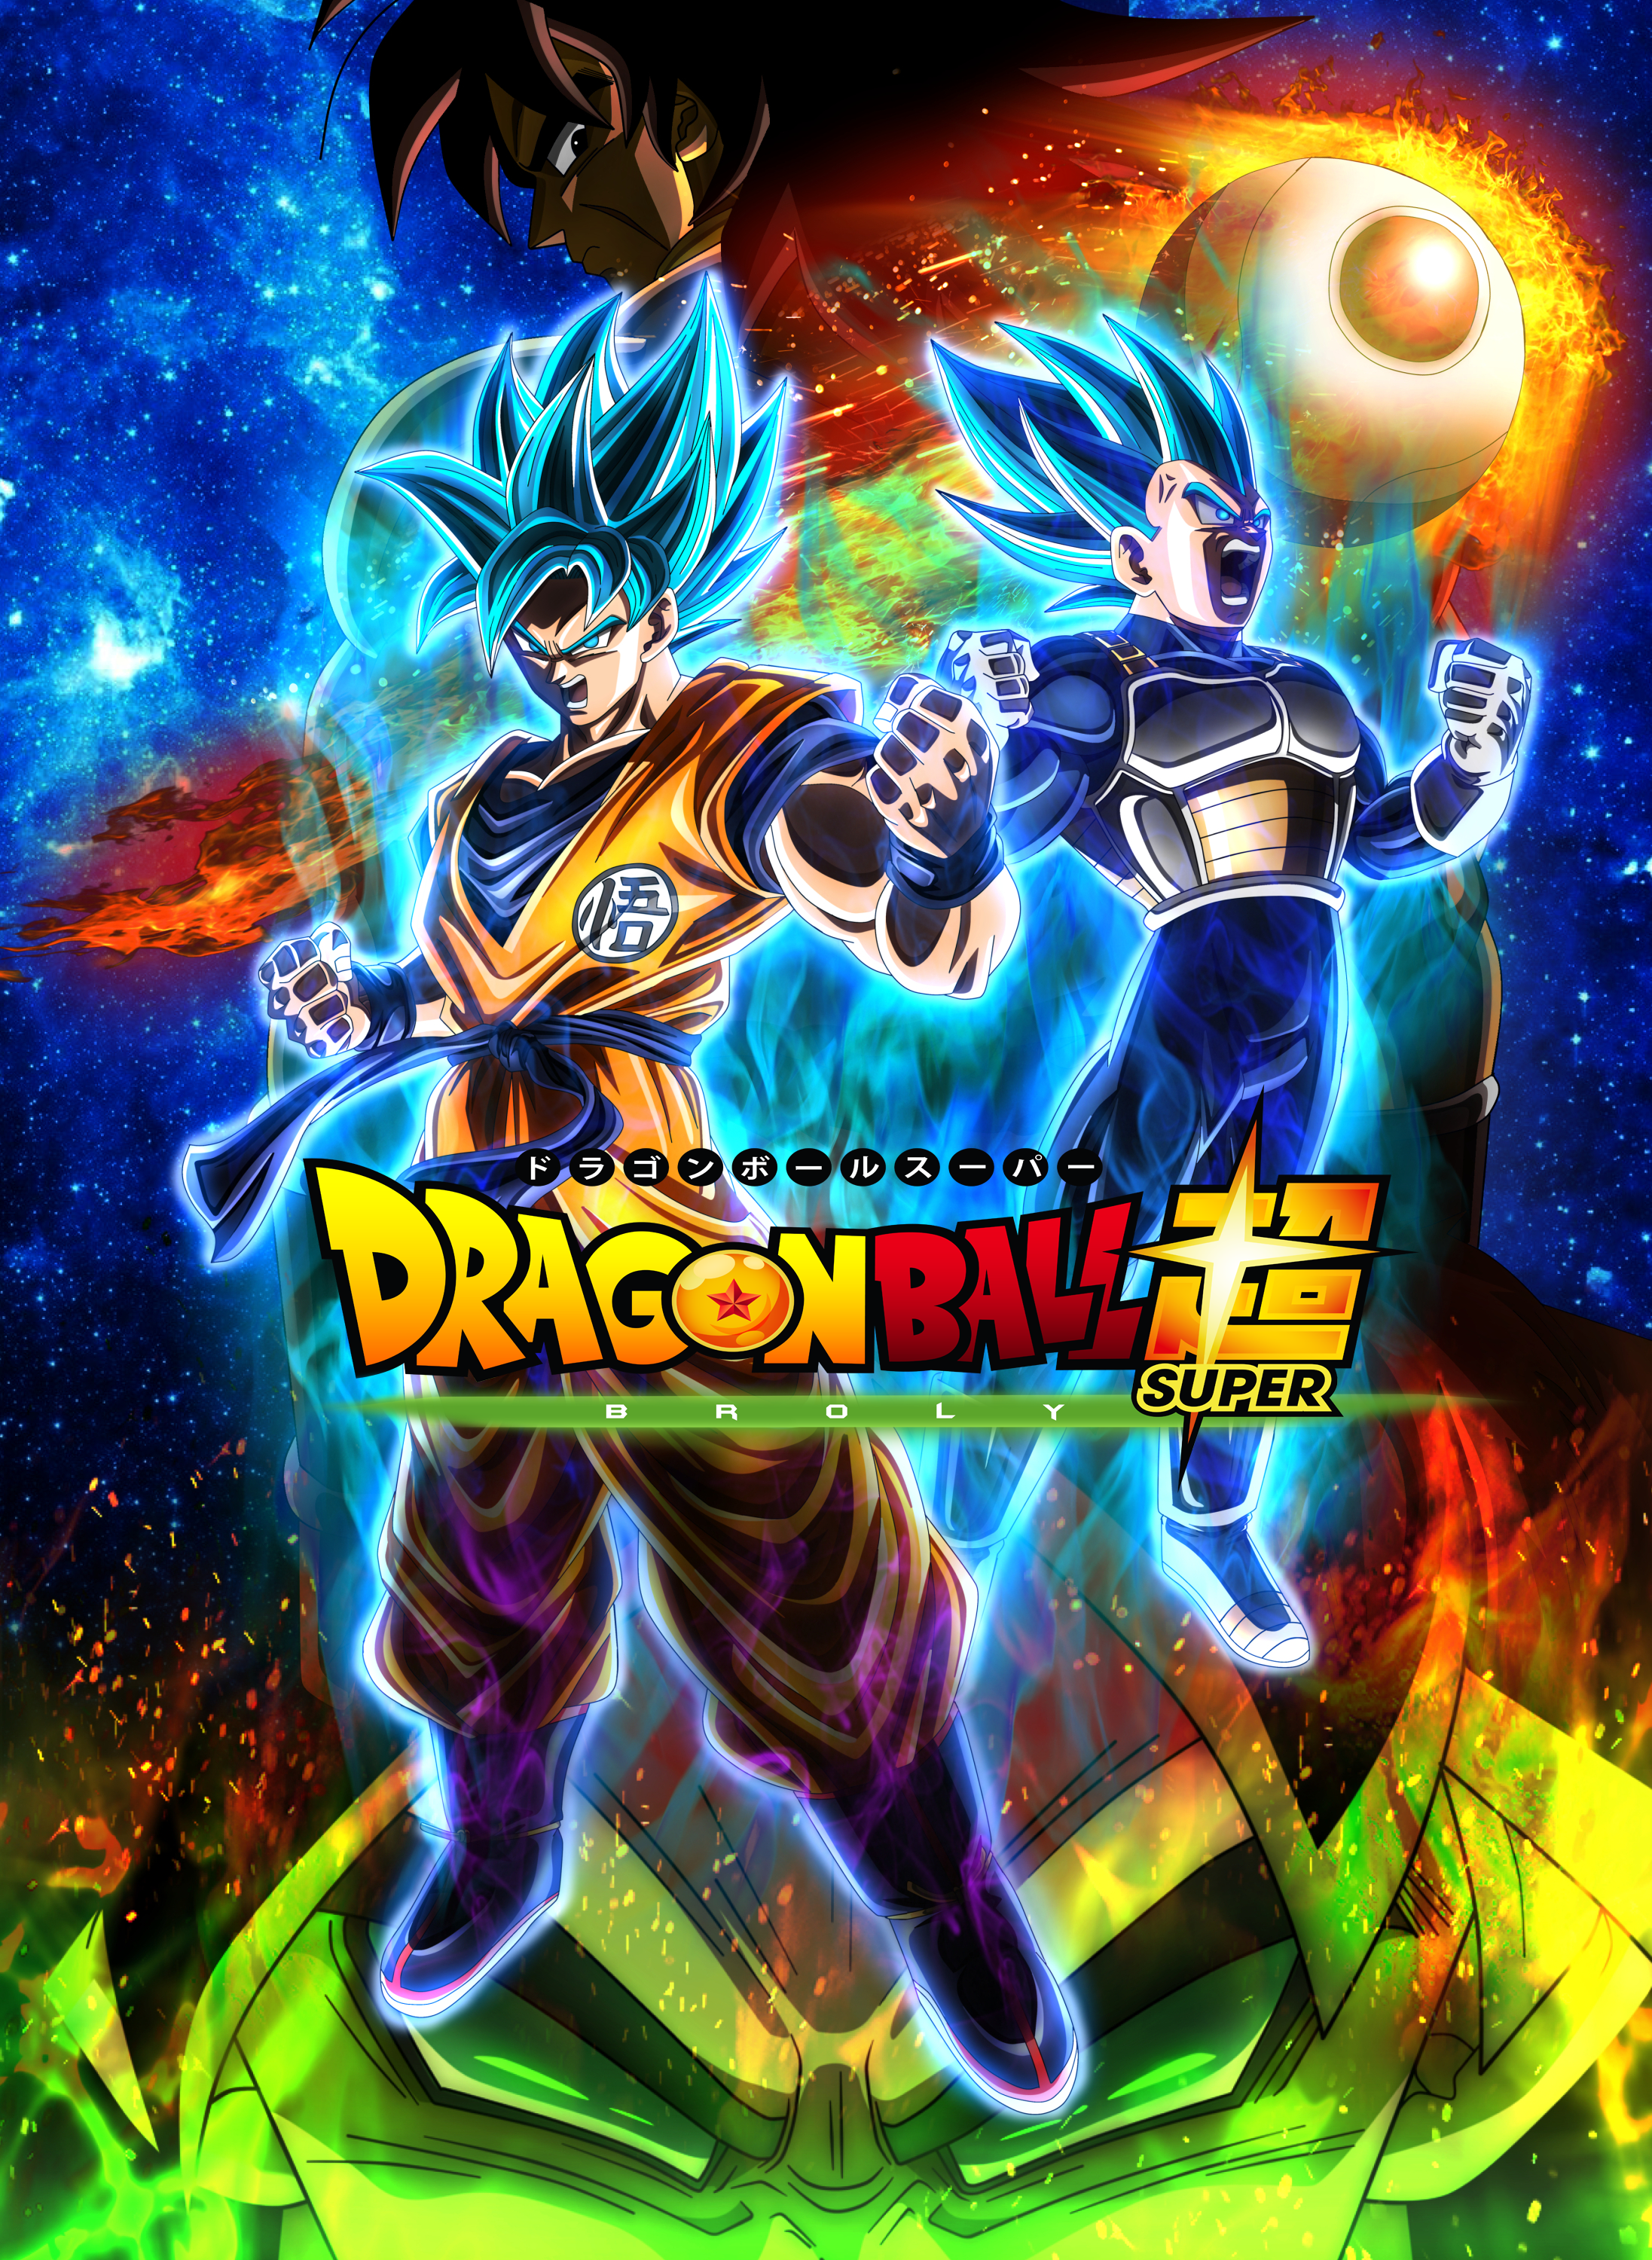 Dragon Ball Super Broly Remastered Poster Art Id 115488 Art Abyss